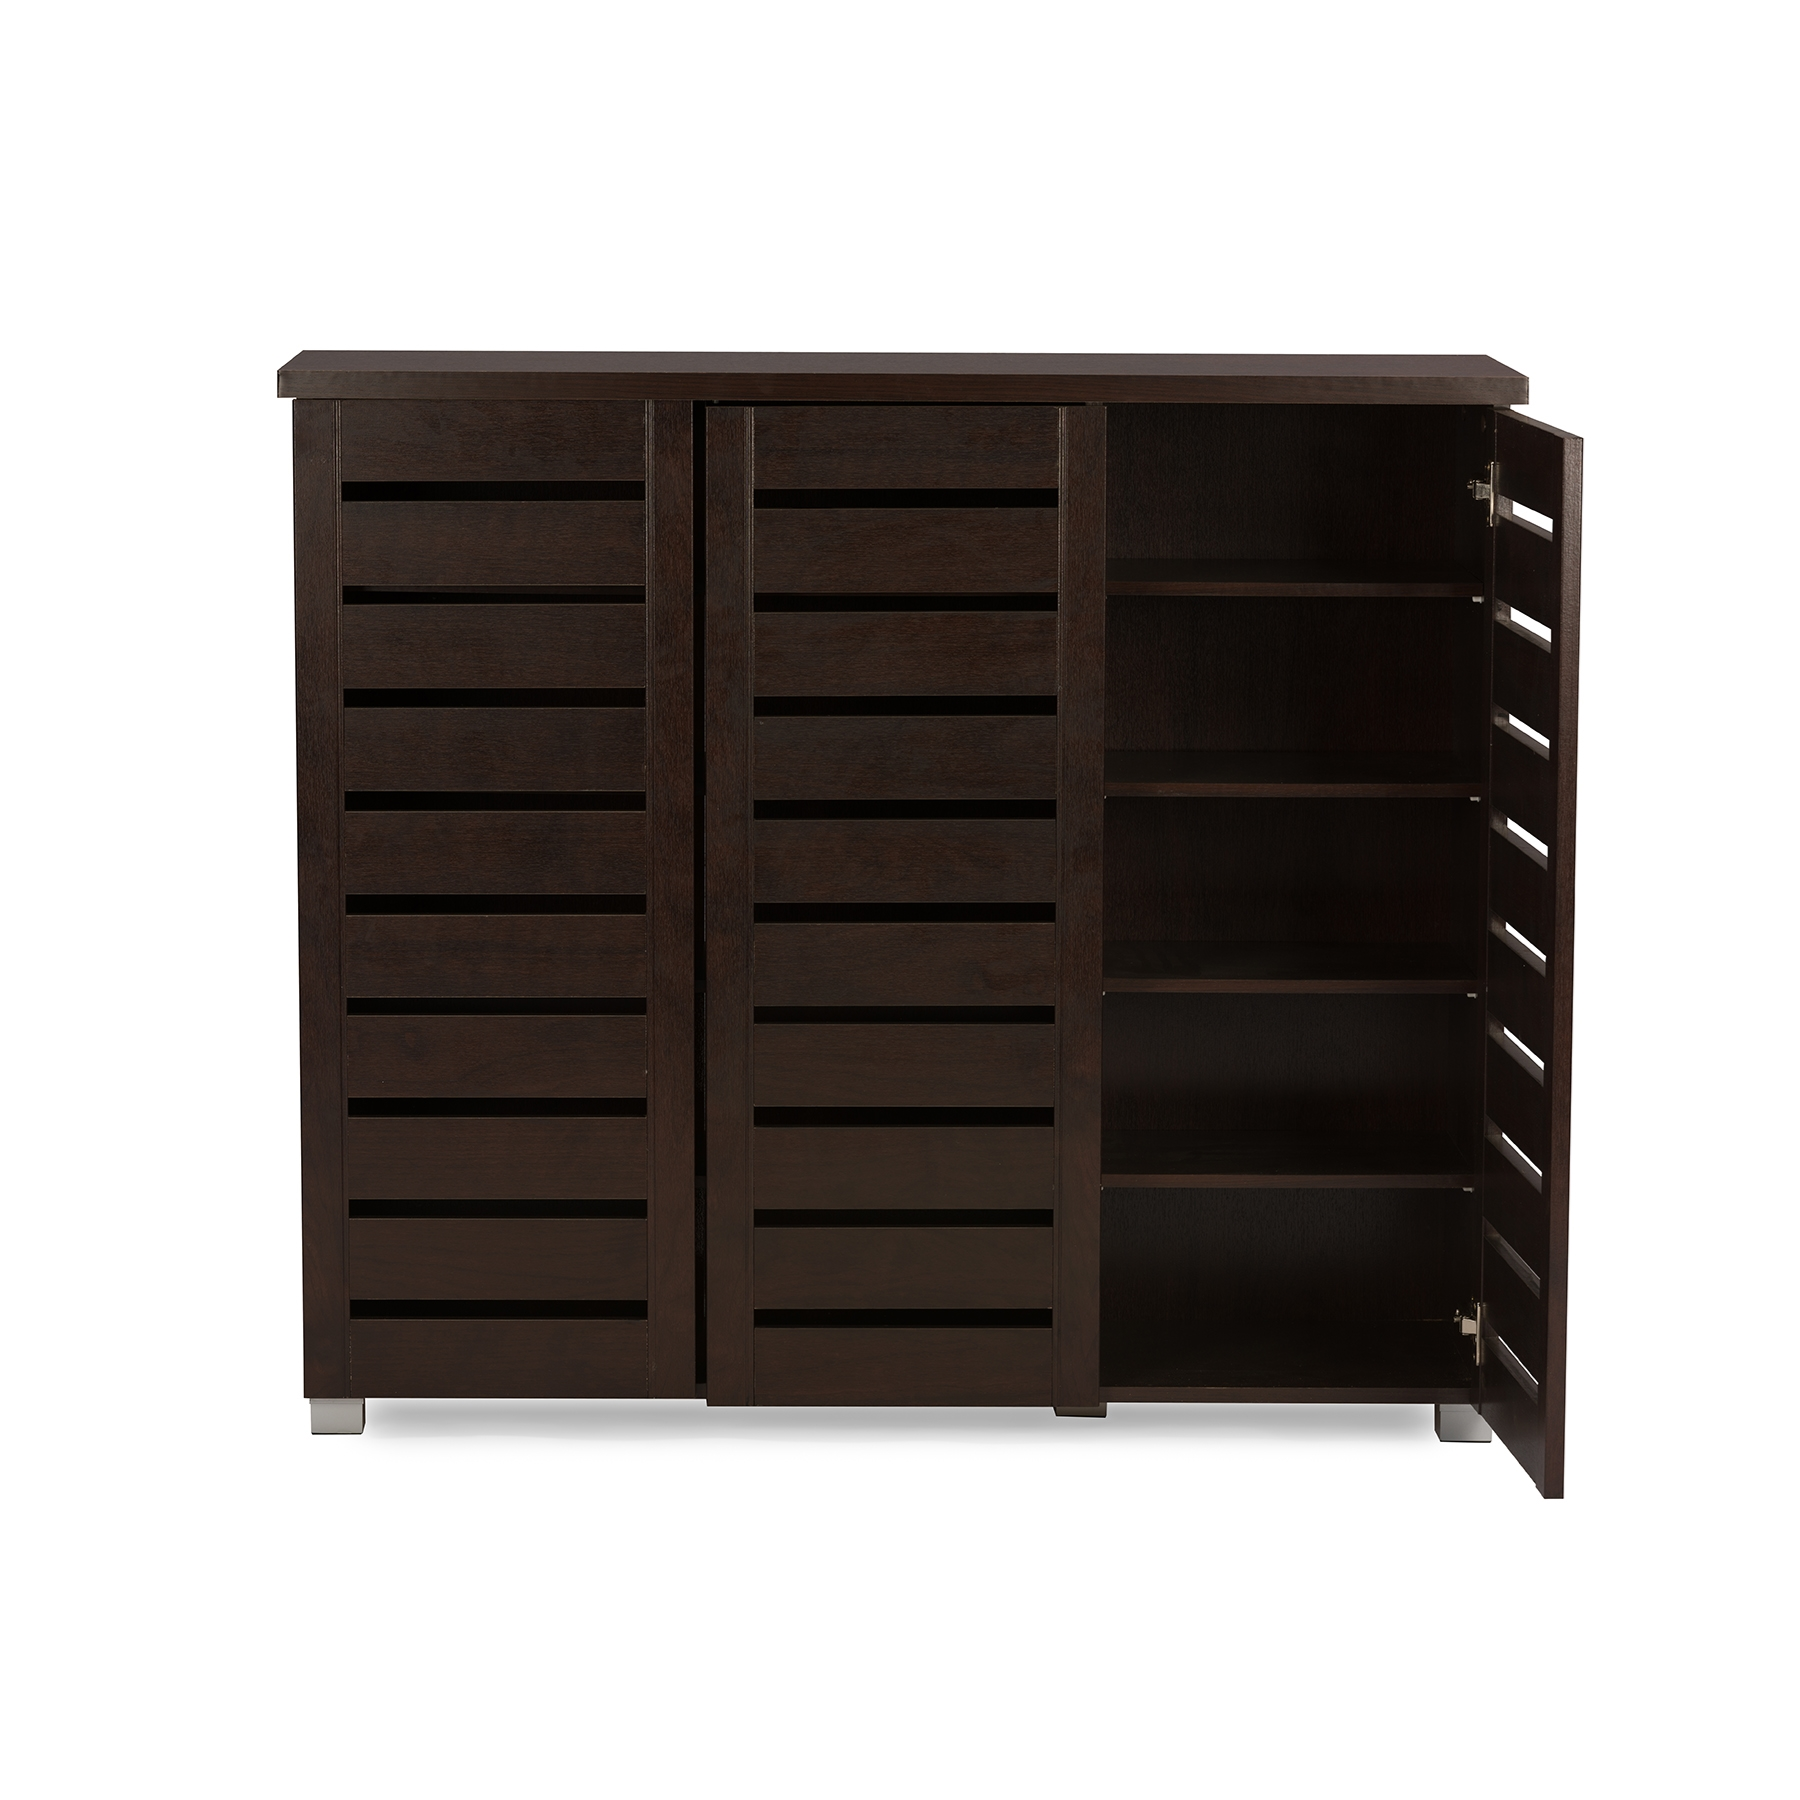 shoe storage furniture for entryway. baxton studio adalwin modern and contemporary 3door dark brown wooden entryway shoes storage cabinet shoe furniture for p